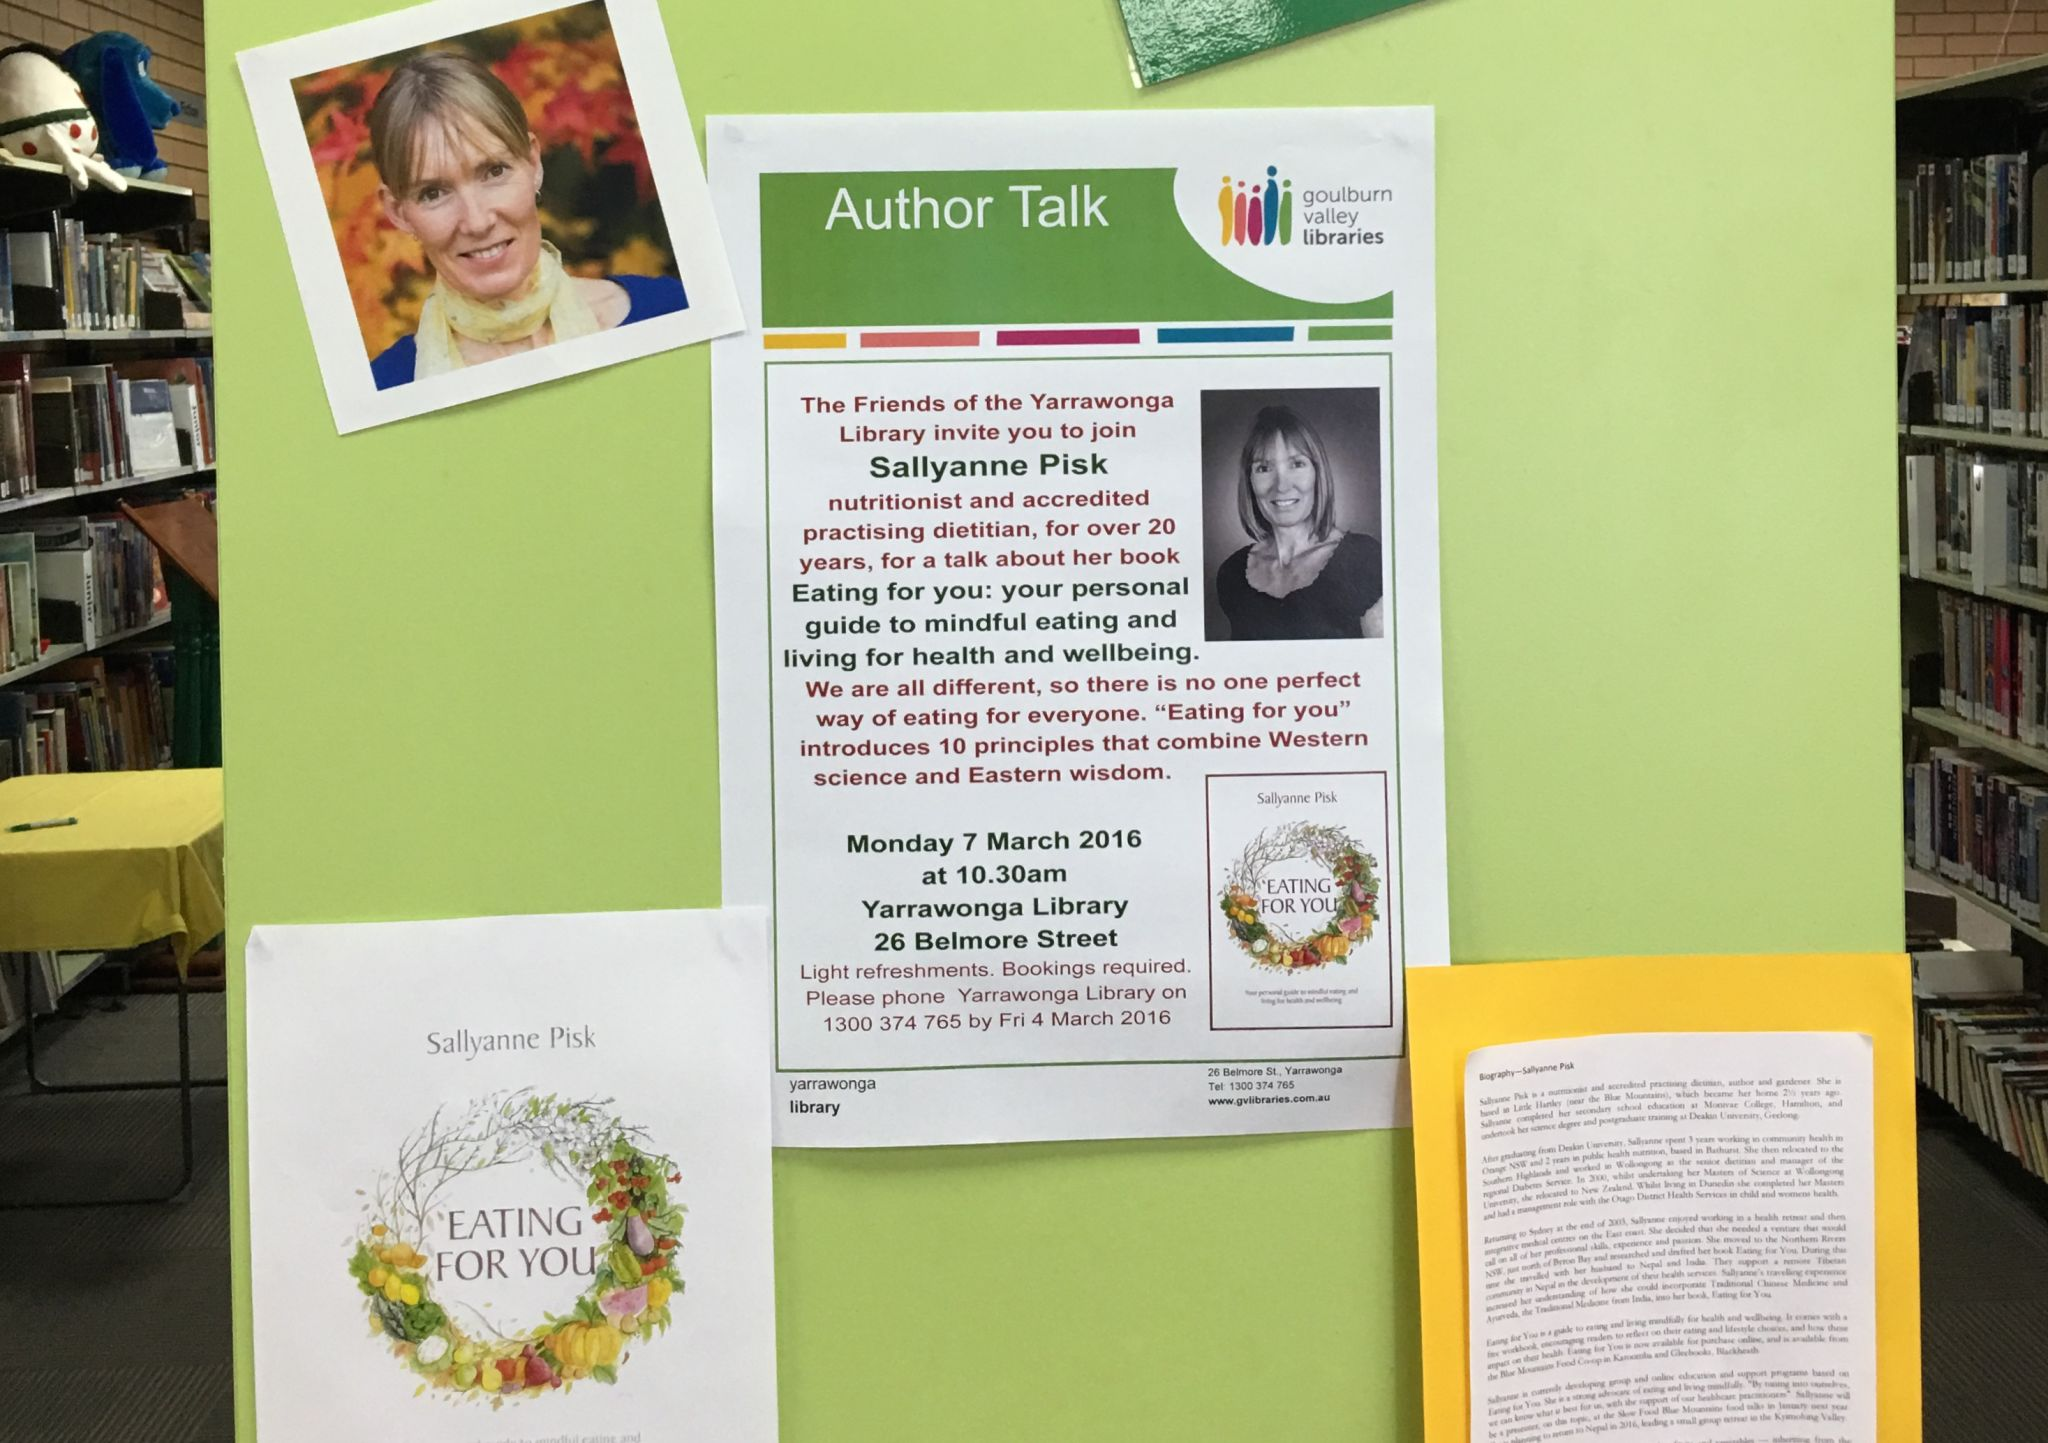 Author talk display at Yarrawonga Library